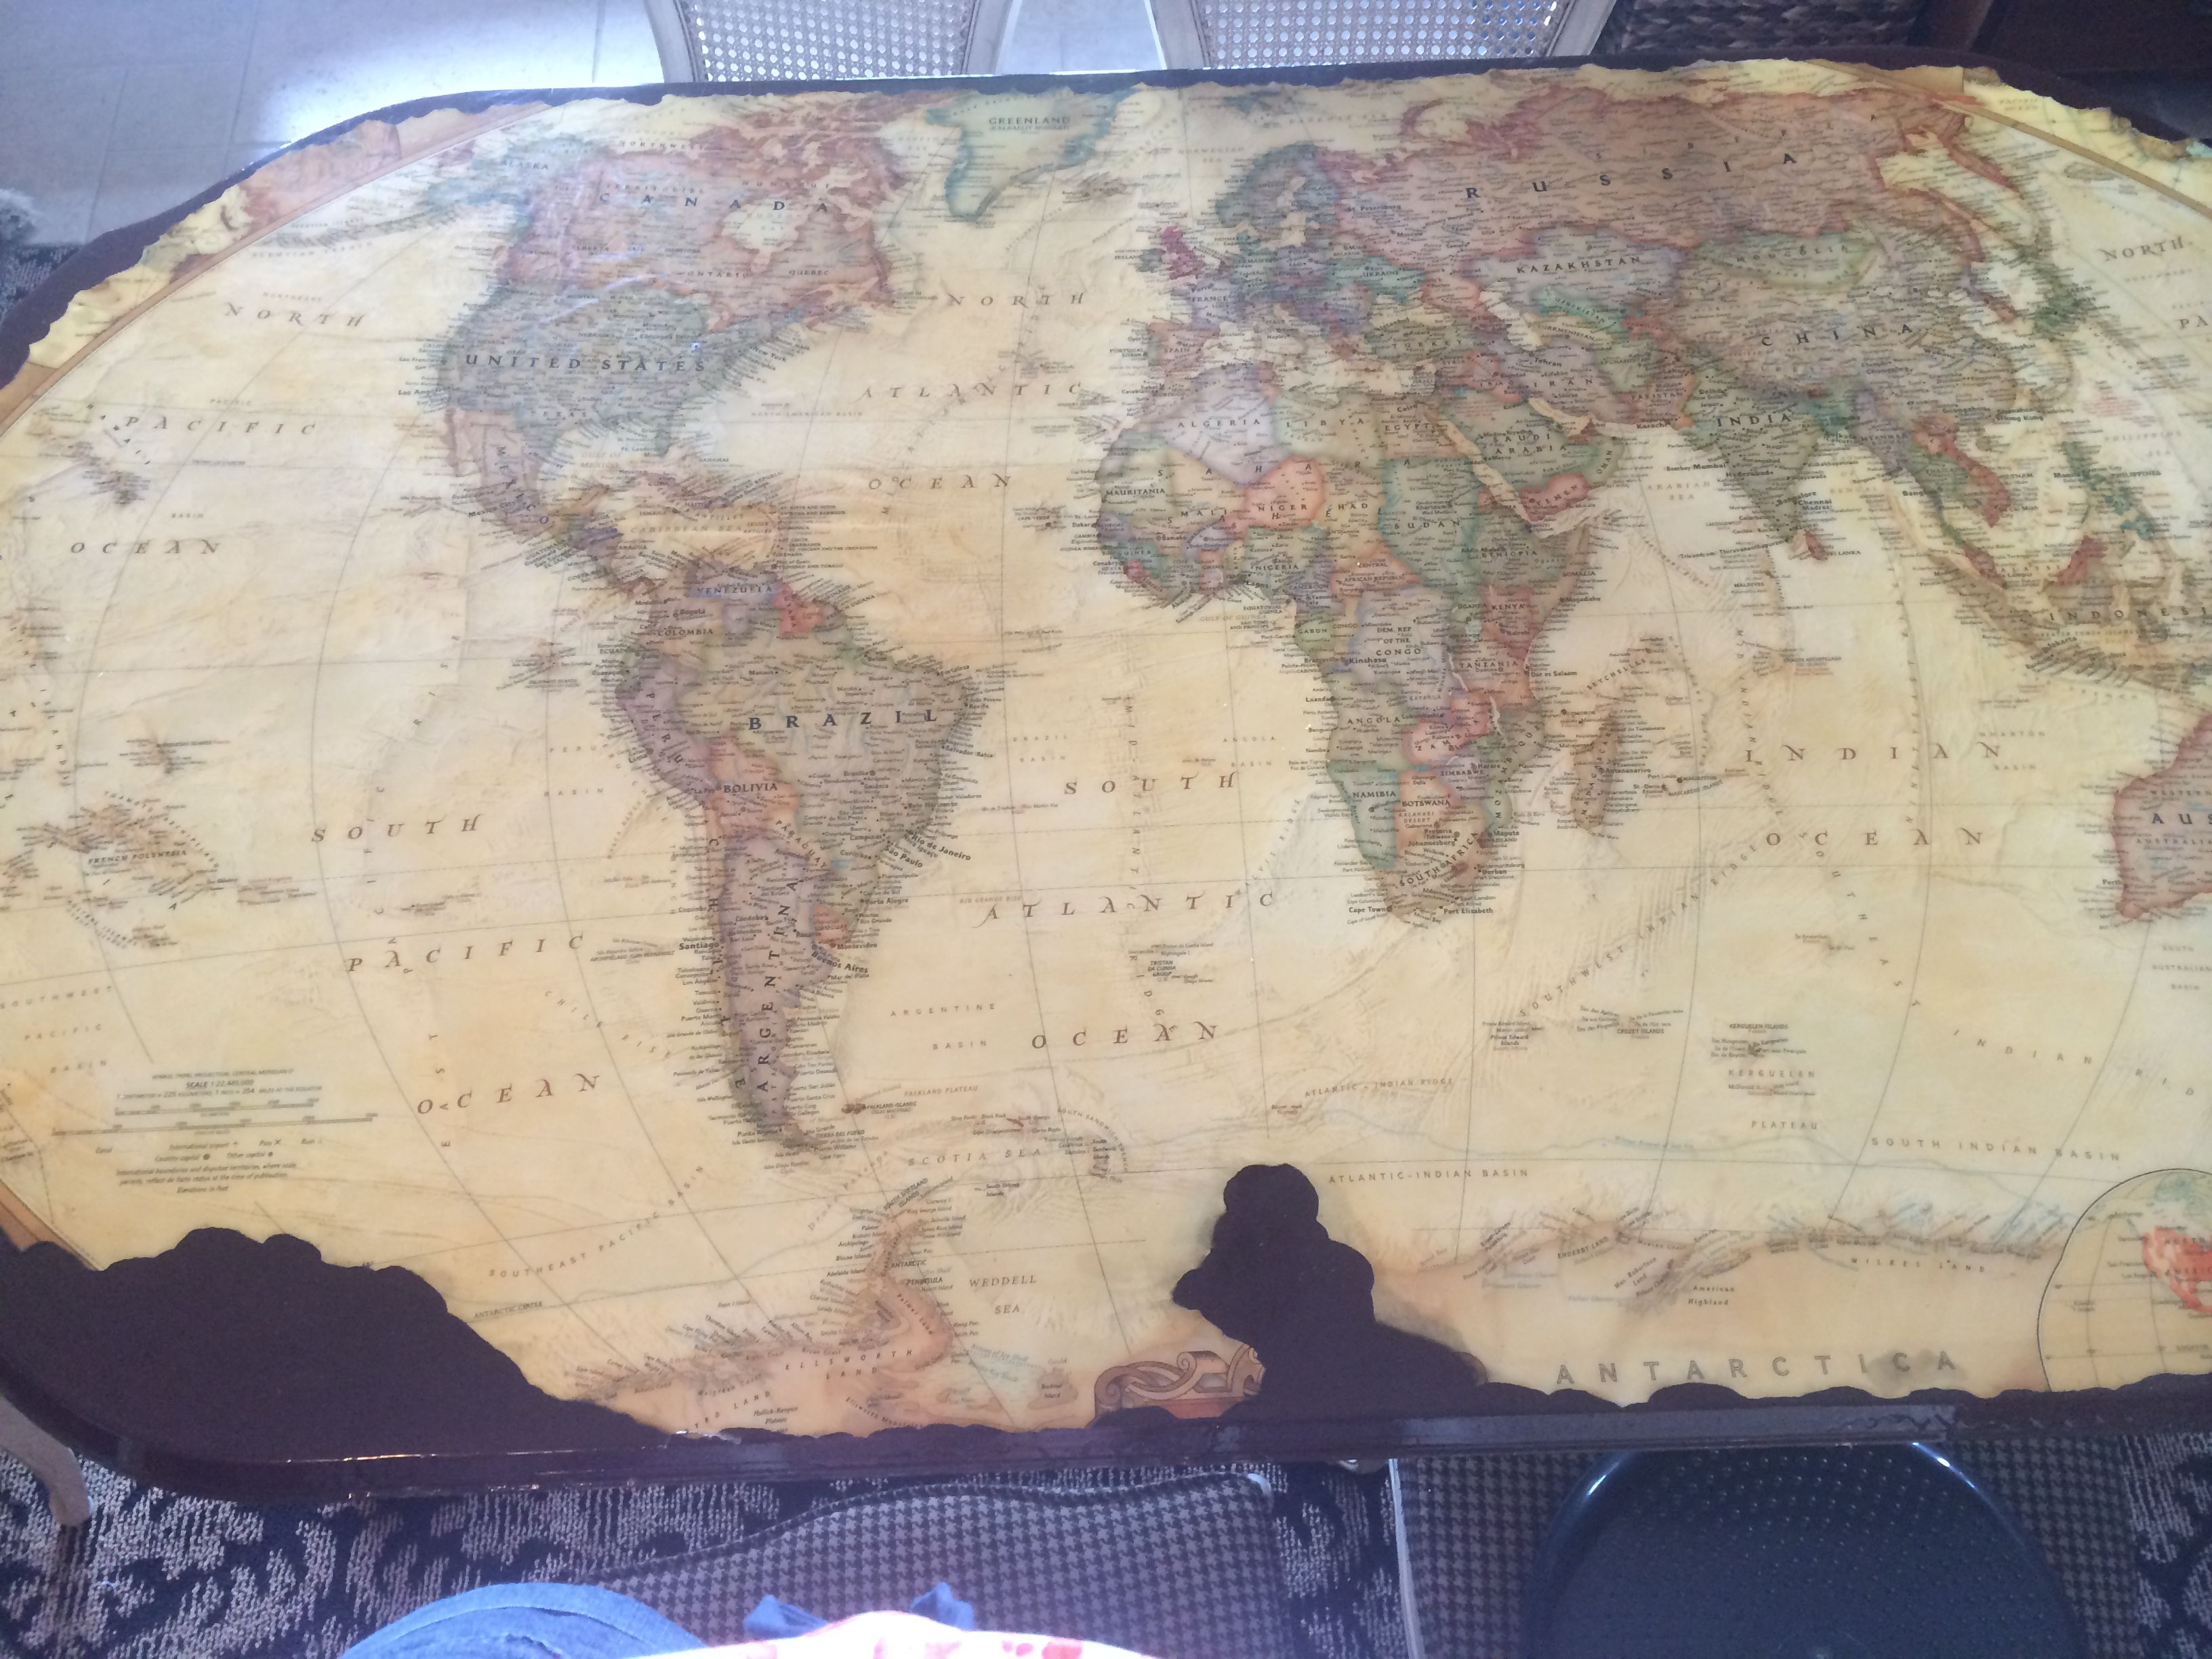 National Geographic map - turned Pirate map - on dining room table - Arrgh, Matey!